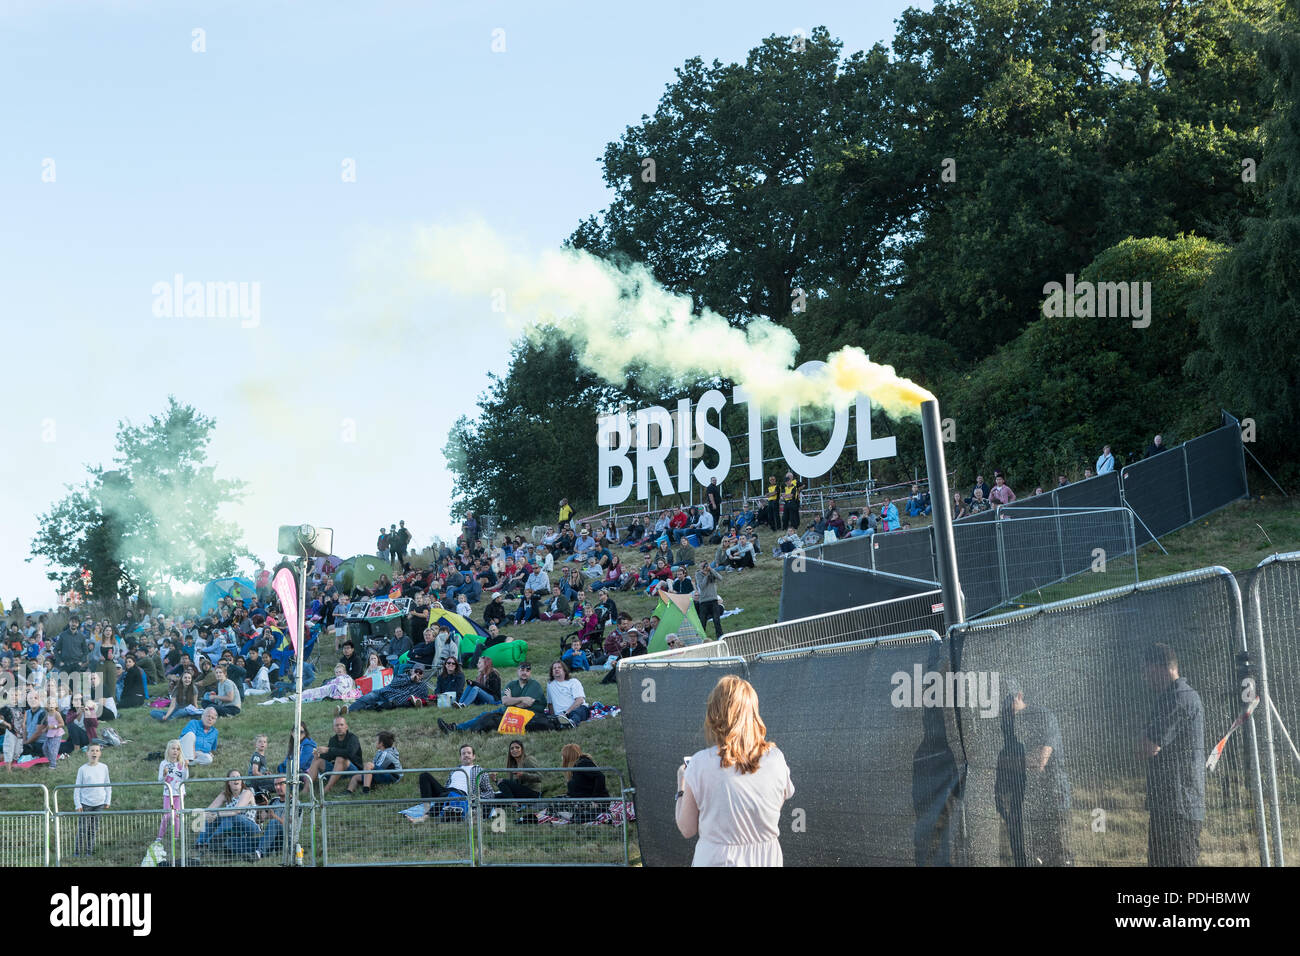 Ashton Court, Bristol, UK. 09 August 2018. Despite large crowds gathering in the sun at Ashton Court for the Special Shaped Balloon launch, the winds proved to be too strong to permit the balloons to fly safely. Organisers are hoping for better flying condition on Friday morning's first mass launch celebrating 40 years of the fiesta.  Neil Cordell/Alamy Live News - Stock Image